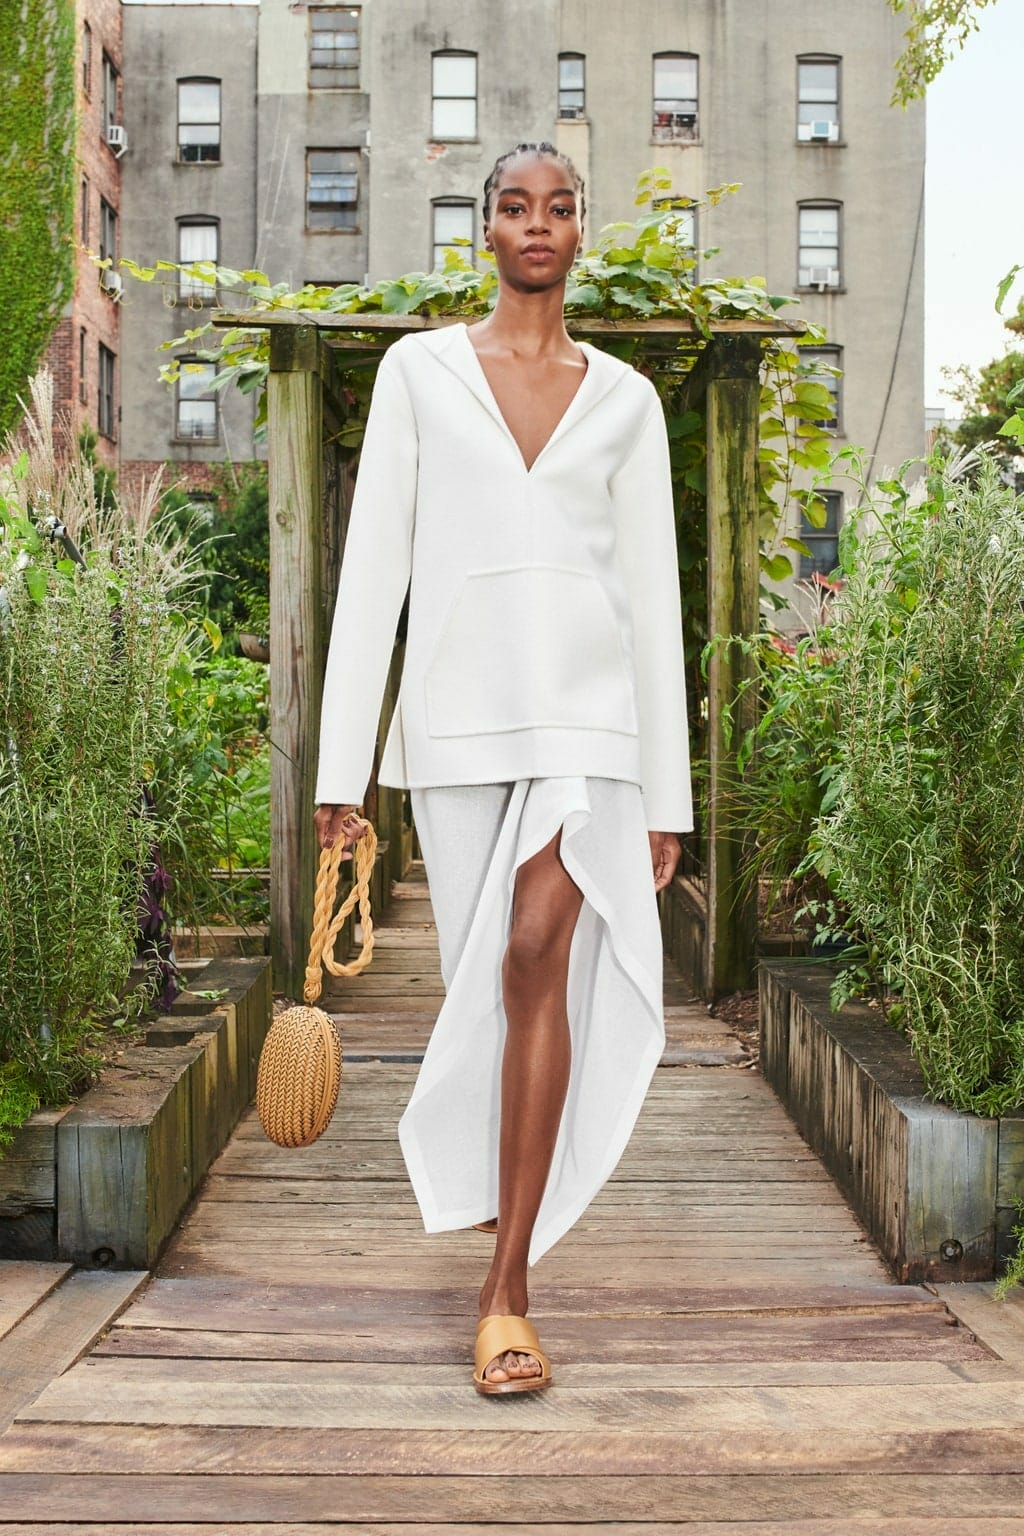 Michael Kors Spring Summer 2021 New York. RUNWAY MAGAZINE ® Collections. RUNWAY NOW / RUNWAY NEW